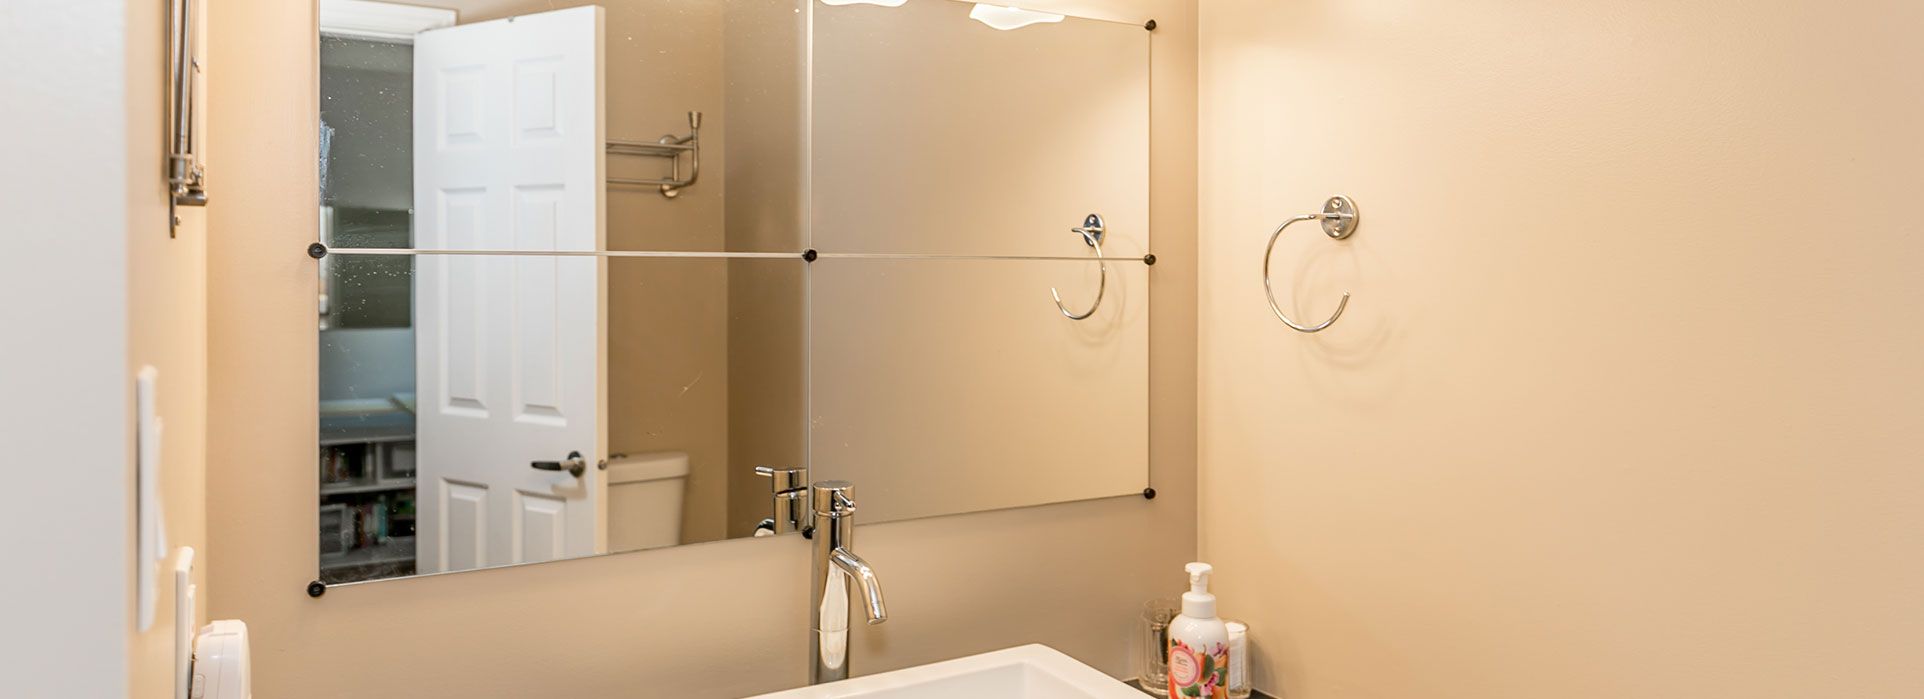 185 Darby Road - In Law Suite Bathroom - Cripps Realty